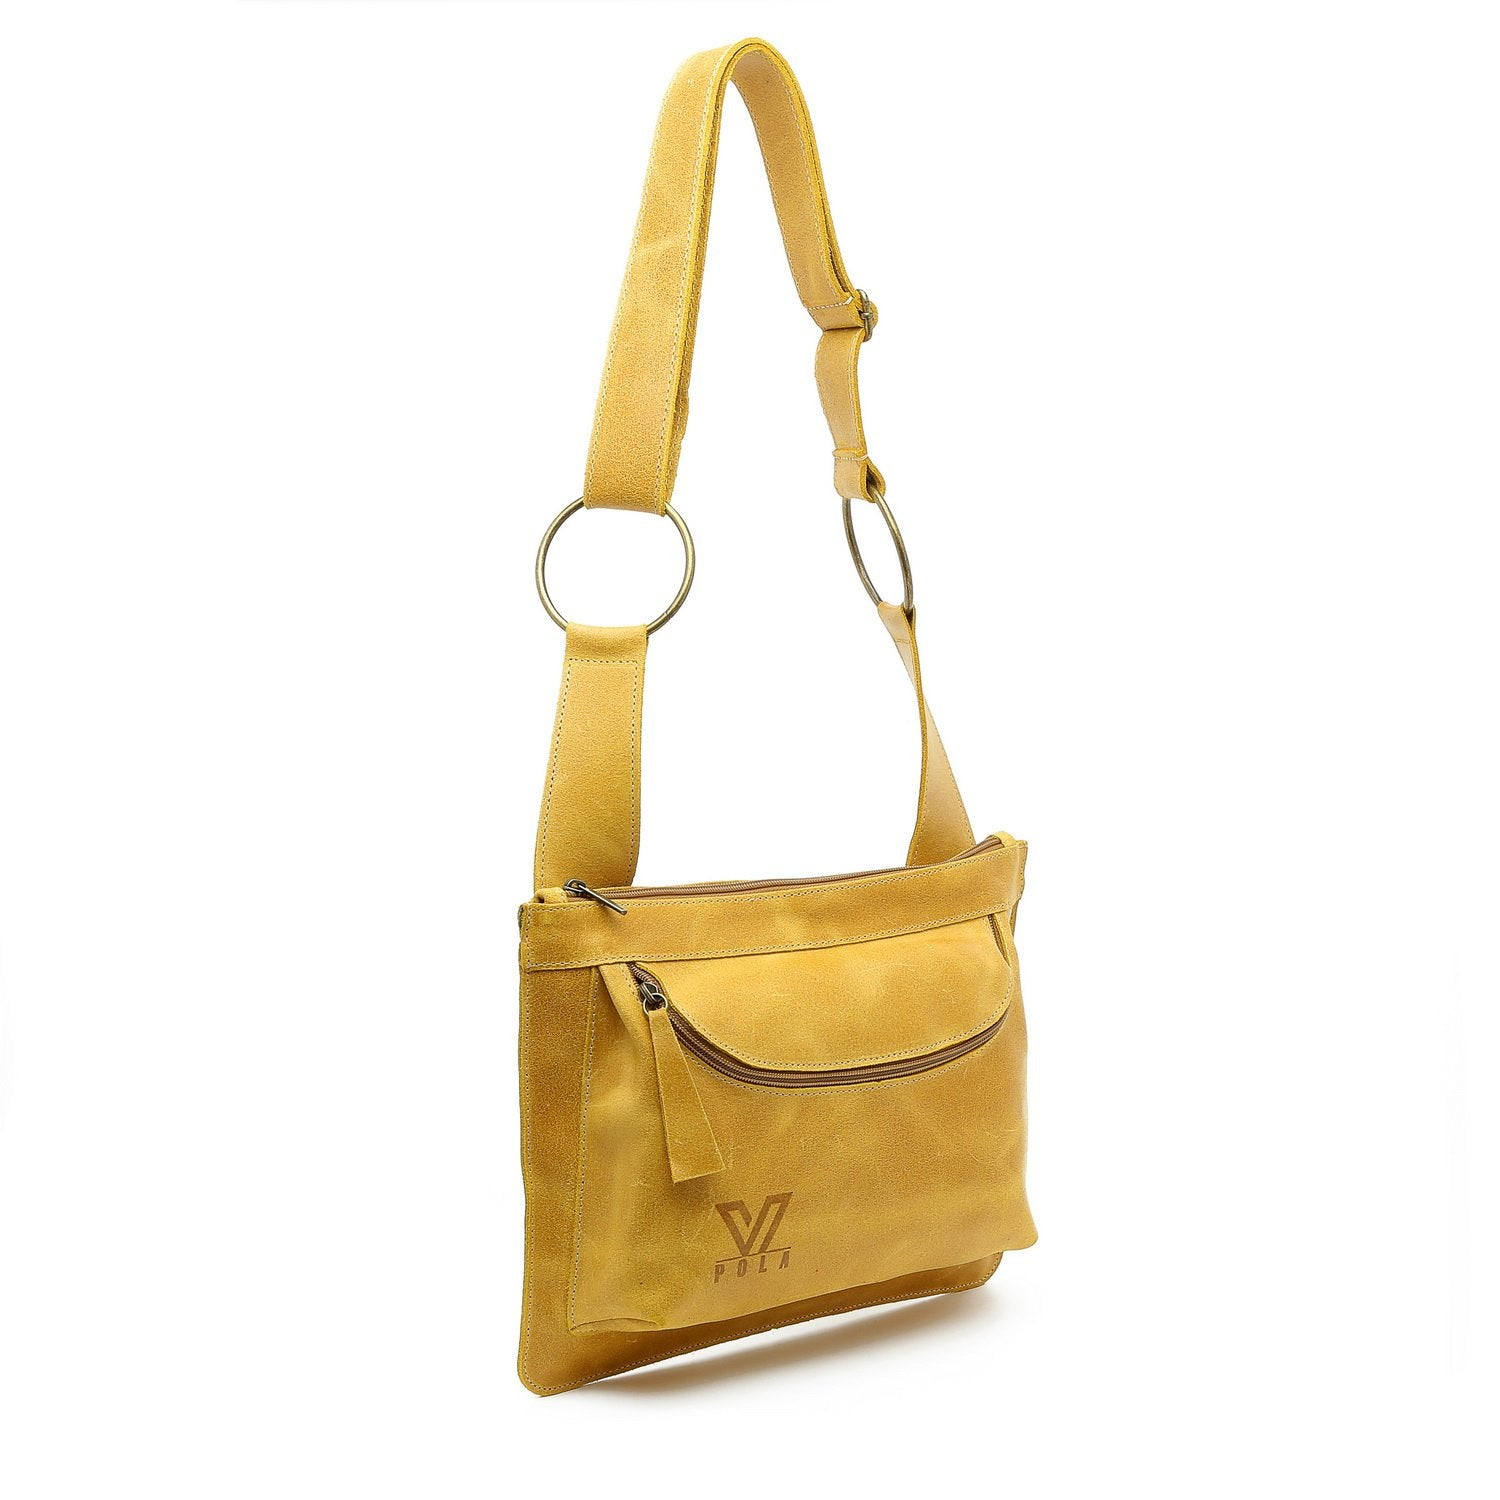 top quality favorable price sold worldwide Tel Aviv - Yellow mustered Leather Bag, Designer Bag, Crossbody Bag, iPad  Bag, Messenger Bag, Handmade Tote, Leather purse, Medium Travel Bag